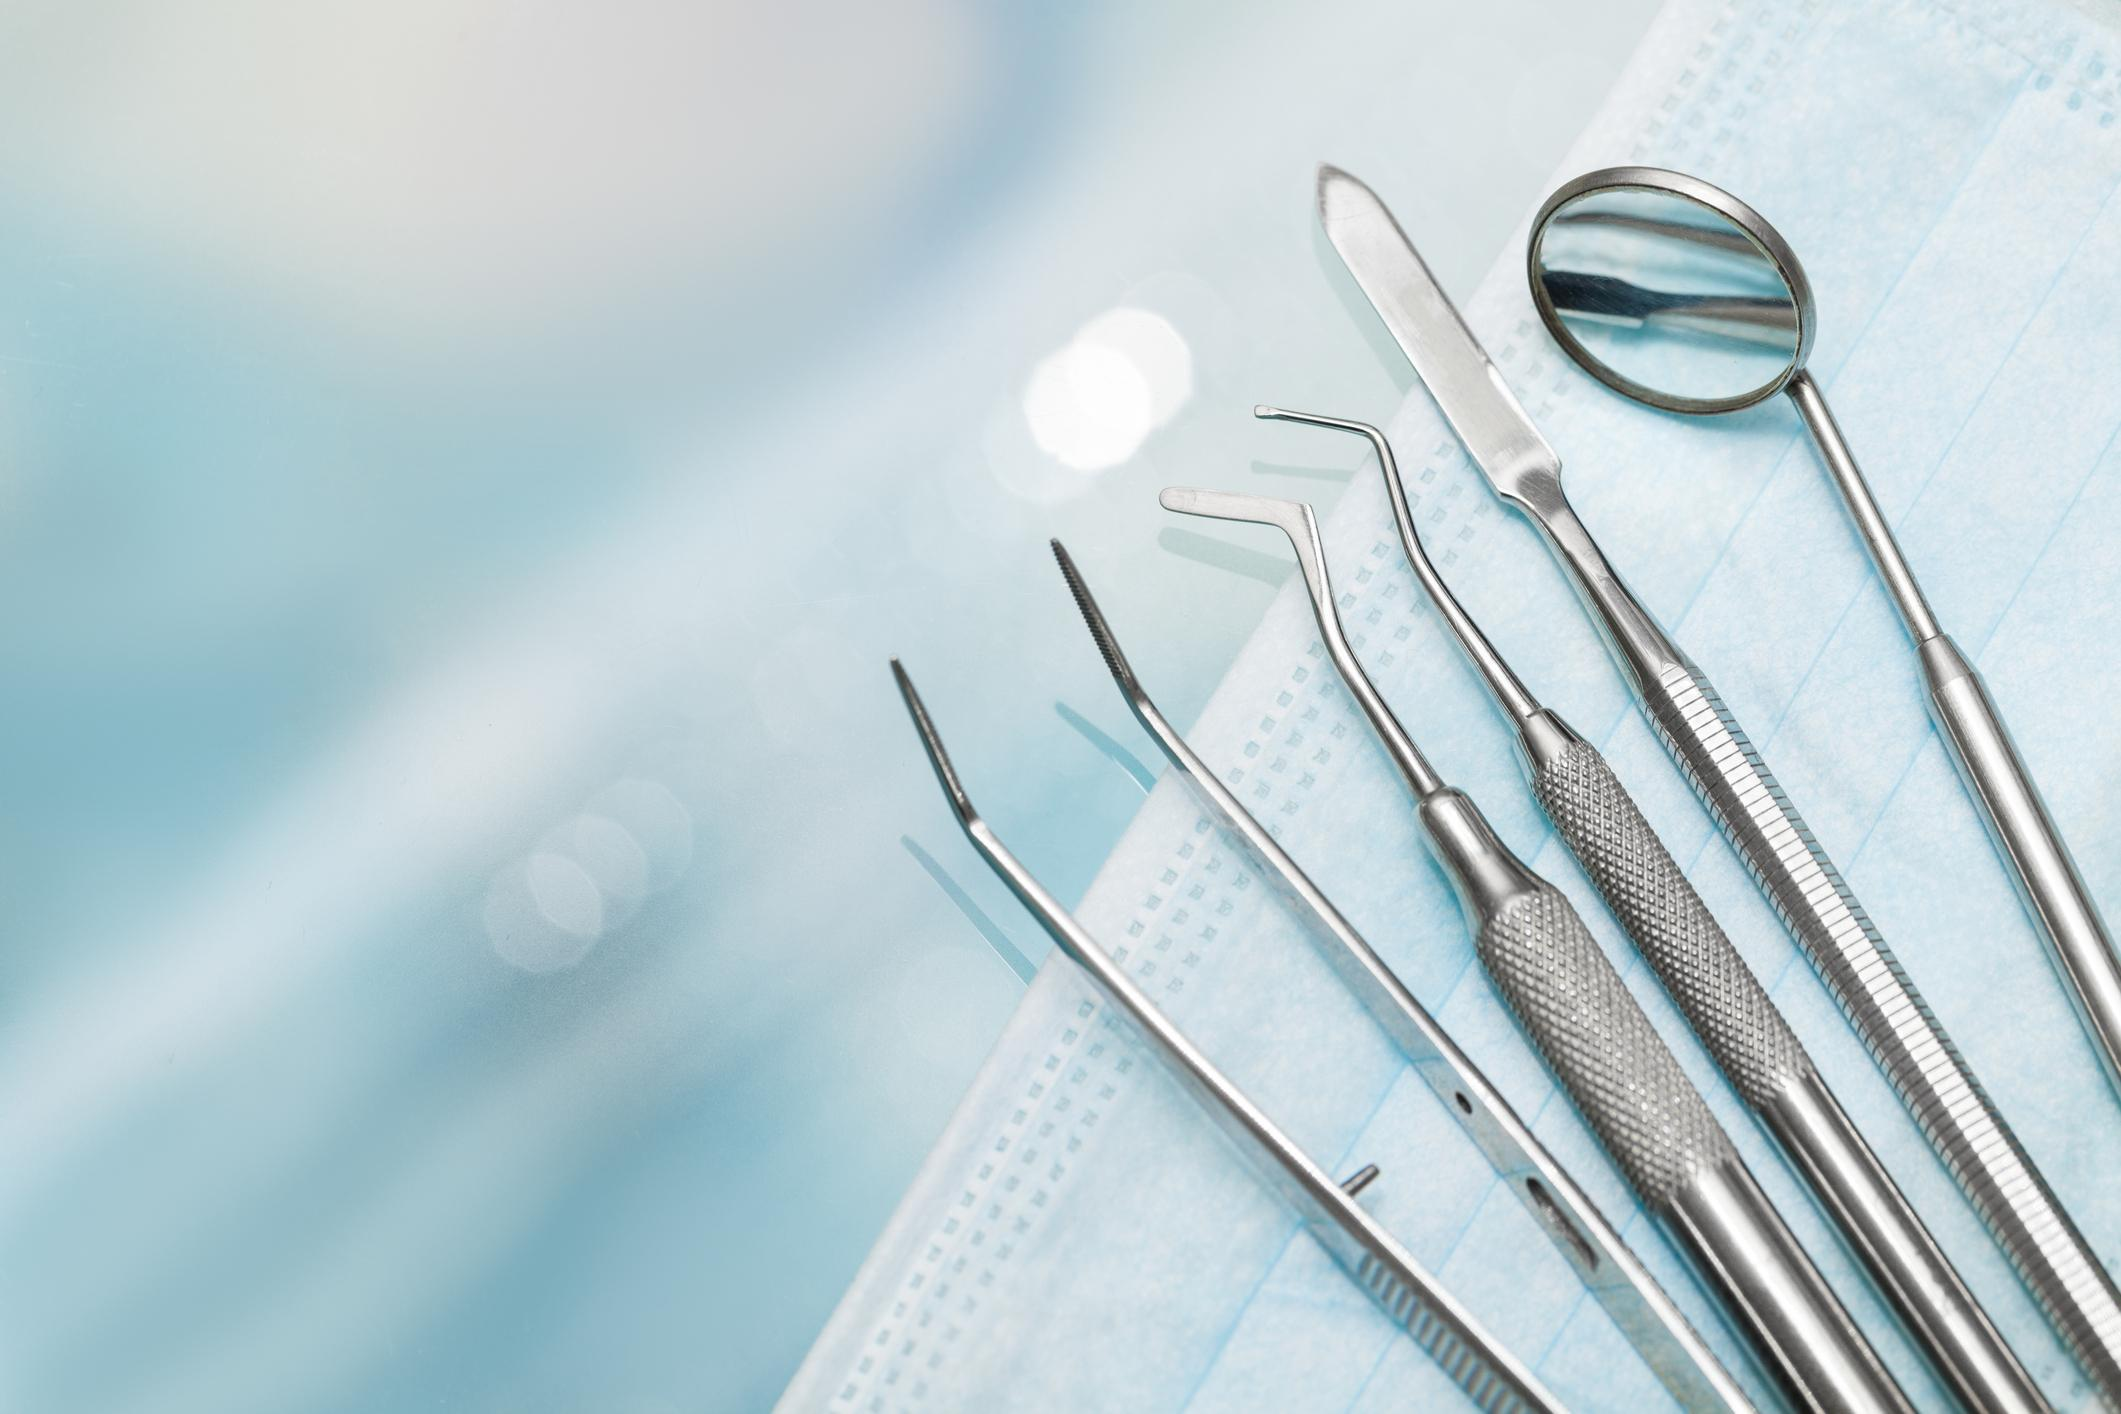 Set of metal dentist's medical equipment tools